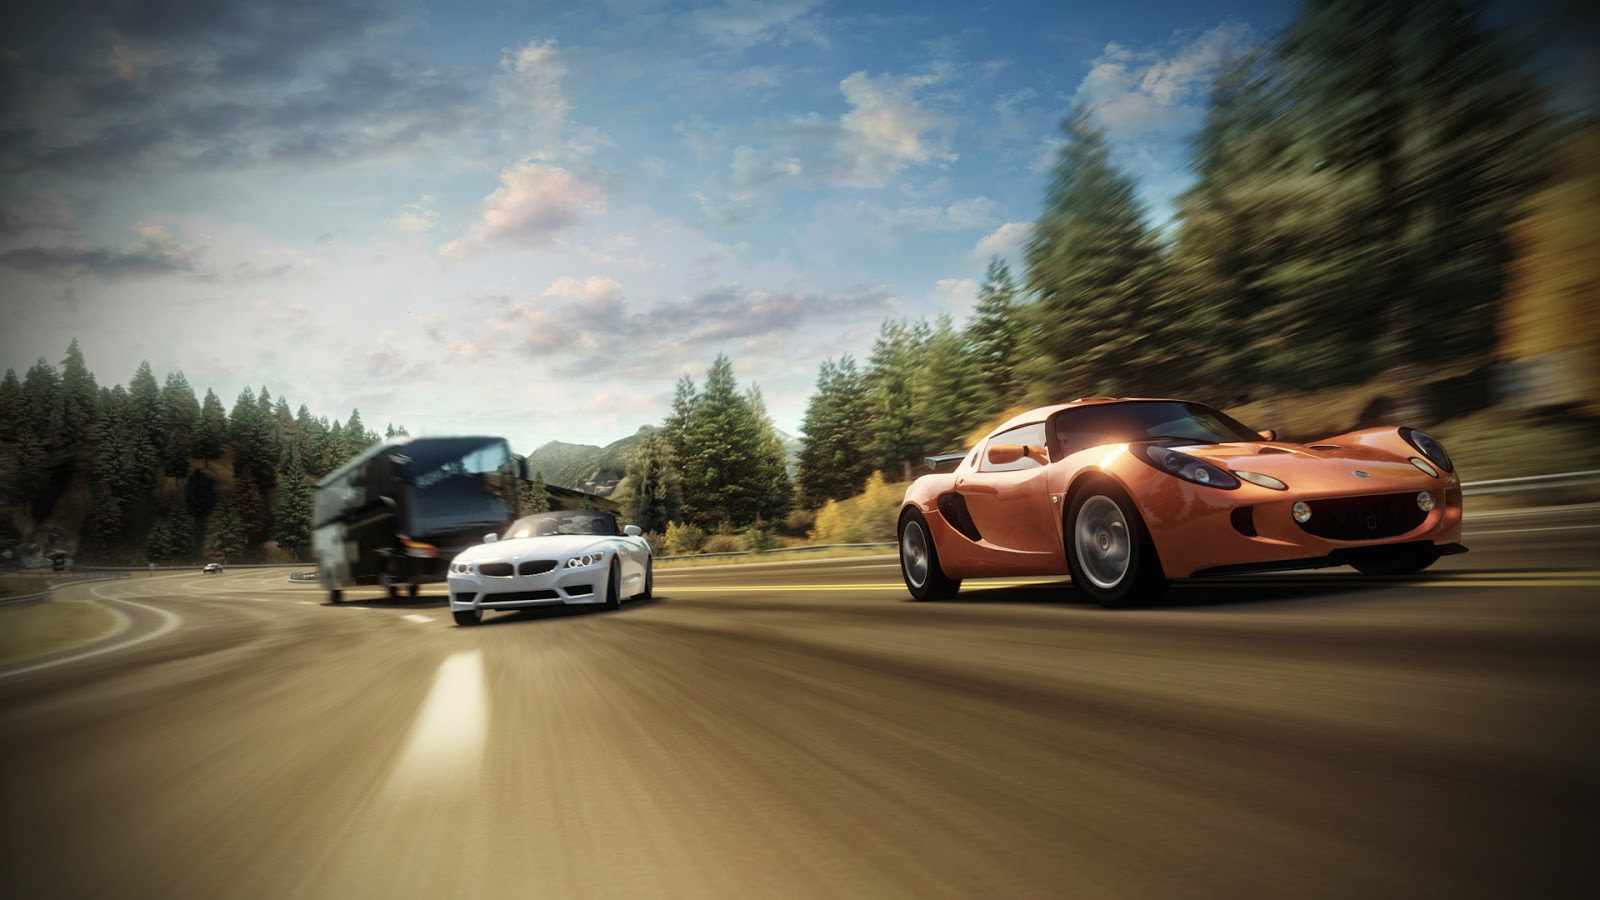 Forza Horizon HD & Widescreen Wallpaper 0.853517759424593